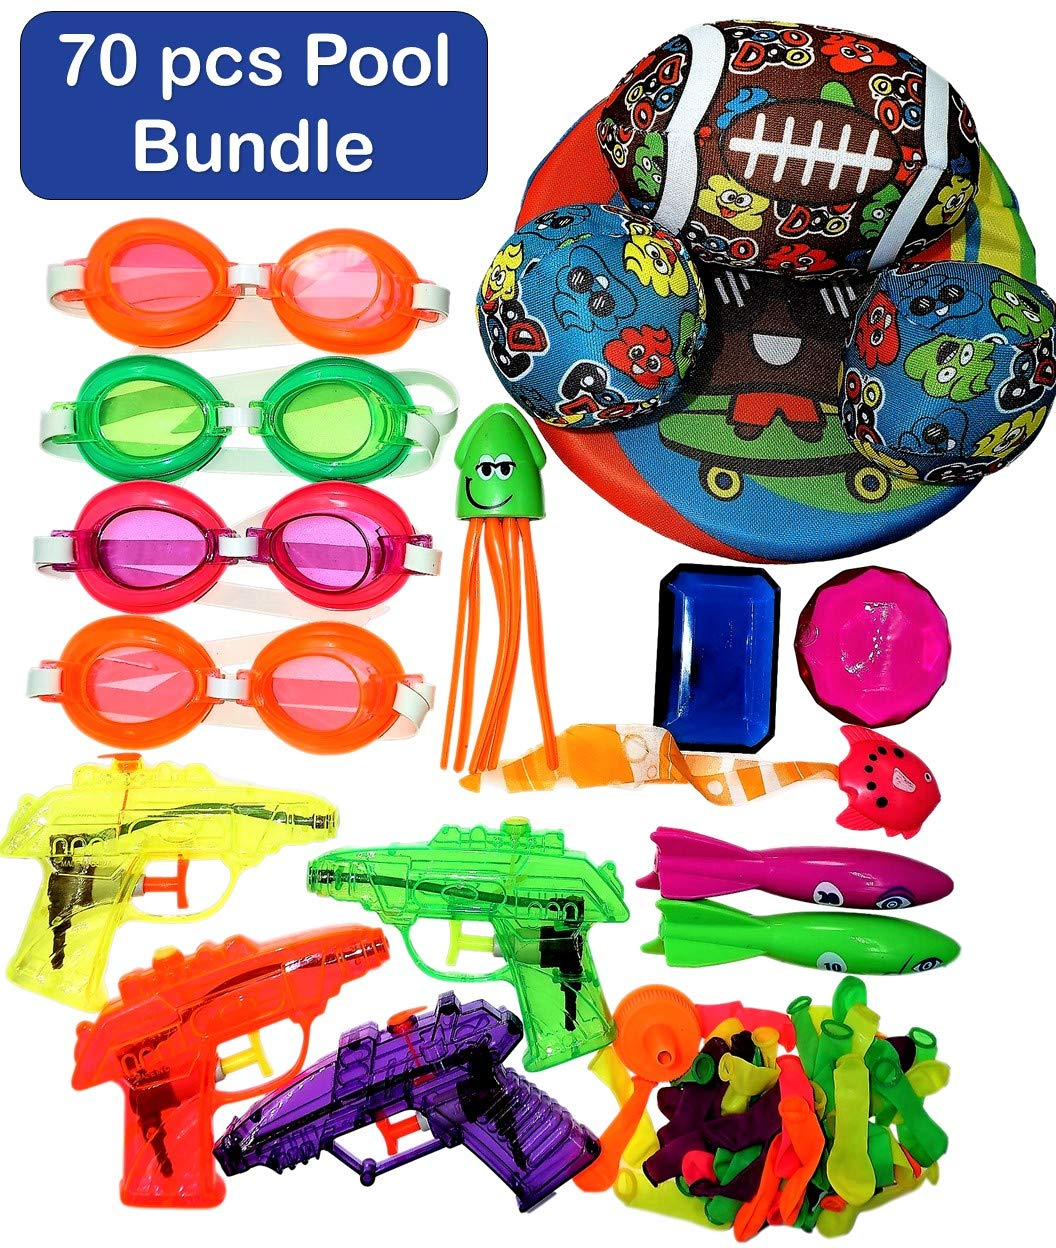 JA-RU Pool Toys 70 Pcs Bundle Kids Swimming Water Pool Party Goggles Splashers Balloons Filter & Collectable Bouncy Ball Items # 179-877-6434-858-4x1170 by JA-RU